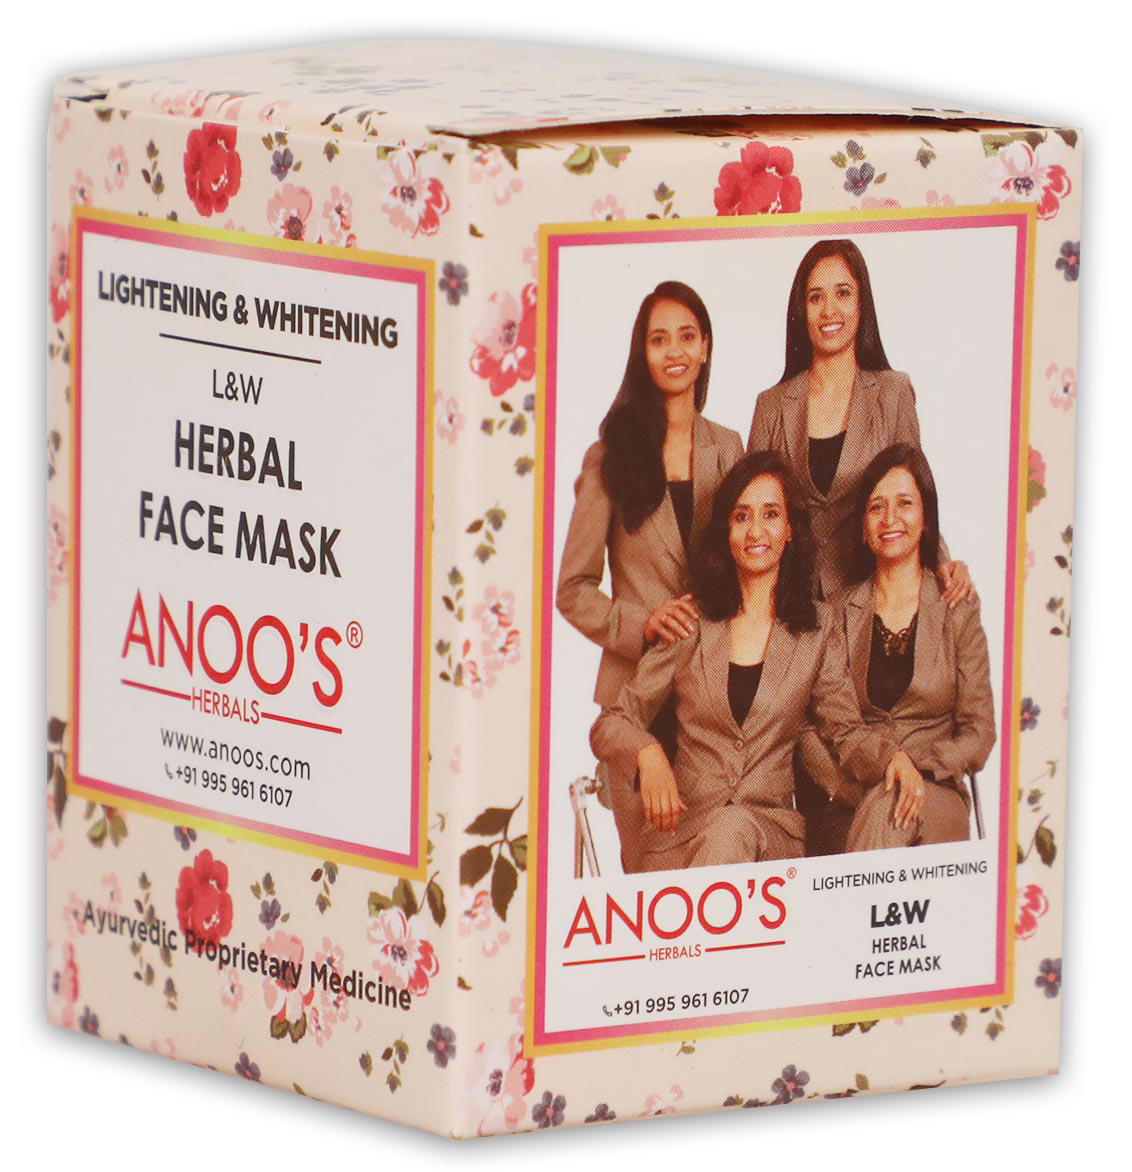 Anoos Lightening Whitening (L &W) Herbal Face Mask